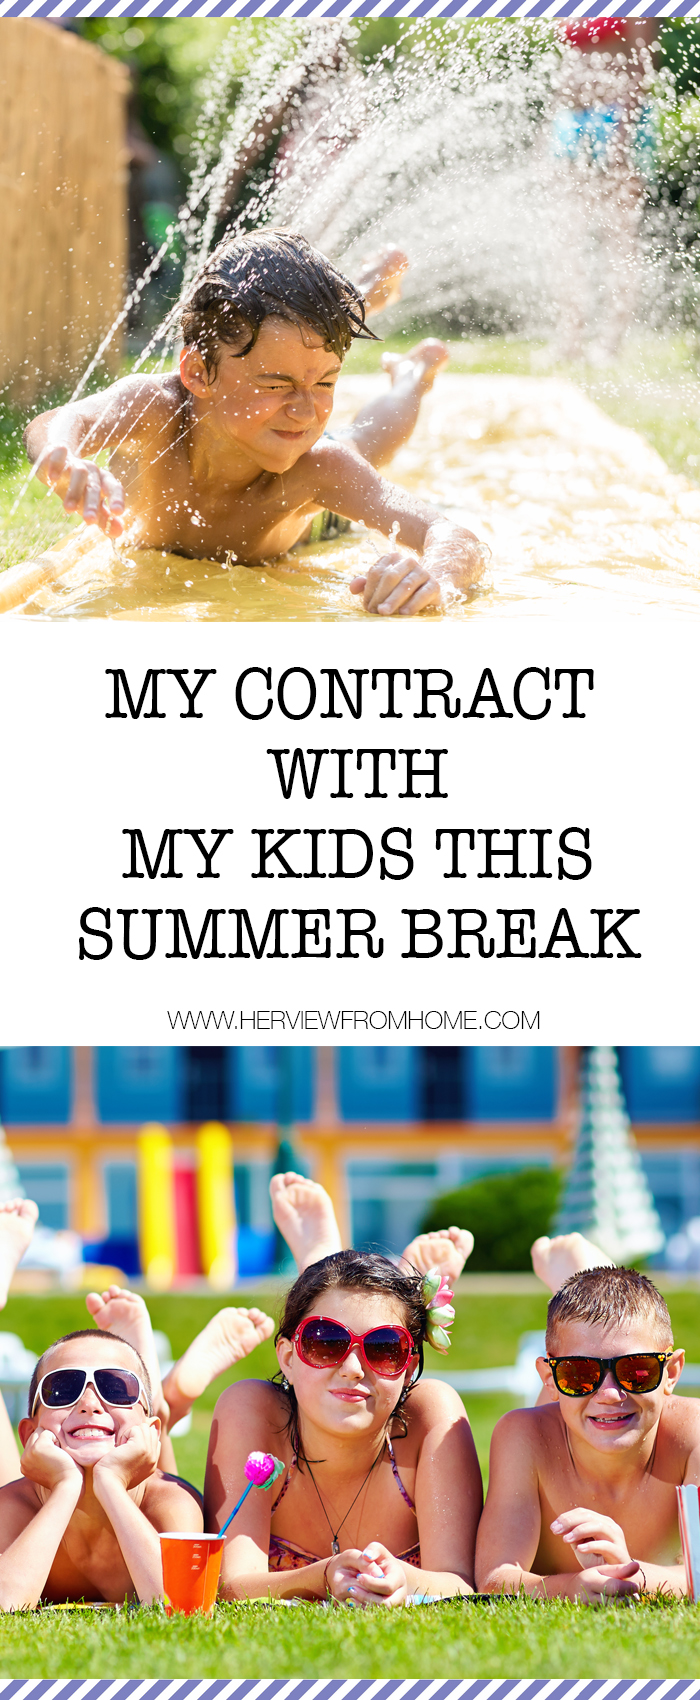 I will accept a dip in the pool is as good as a shower, S'mores for dinner is perfectly reasonable and having friends over is more important than worrying what they'll think of my dirty house. #summer #summerbreak #kids #motherhood